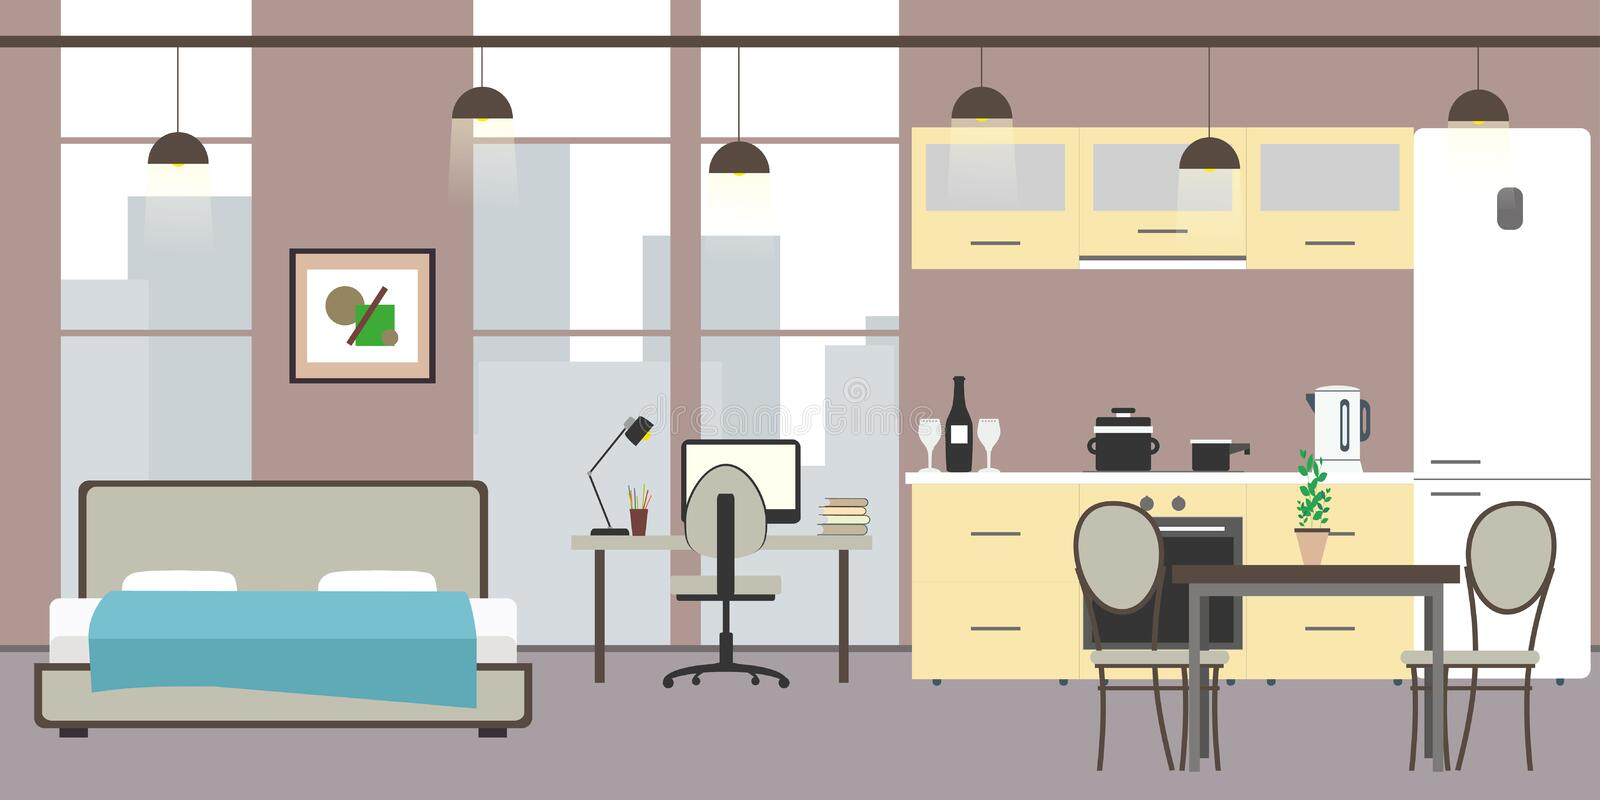 Empty Studio apartment with big windows. Bed, workspace and kitchen with utensils, flat vector illustration royalty free illustration